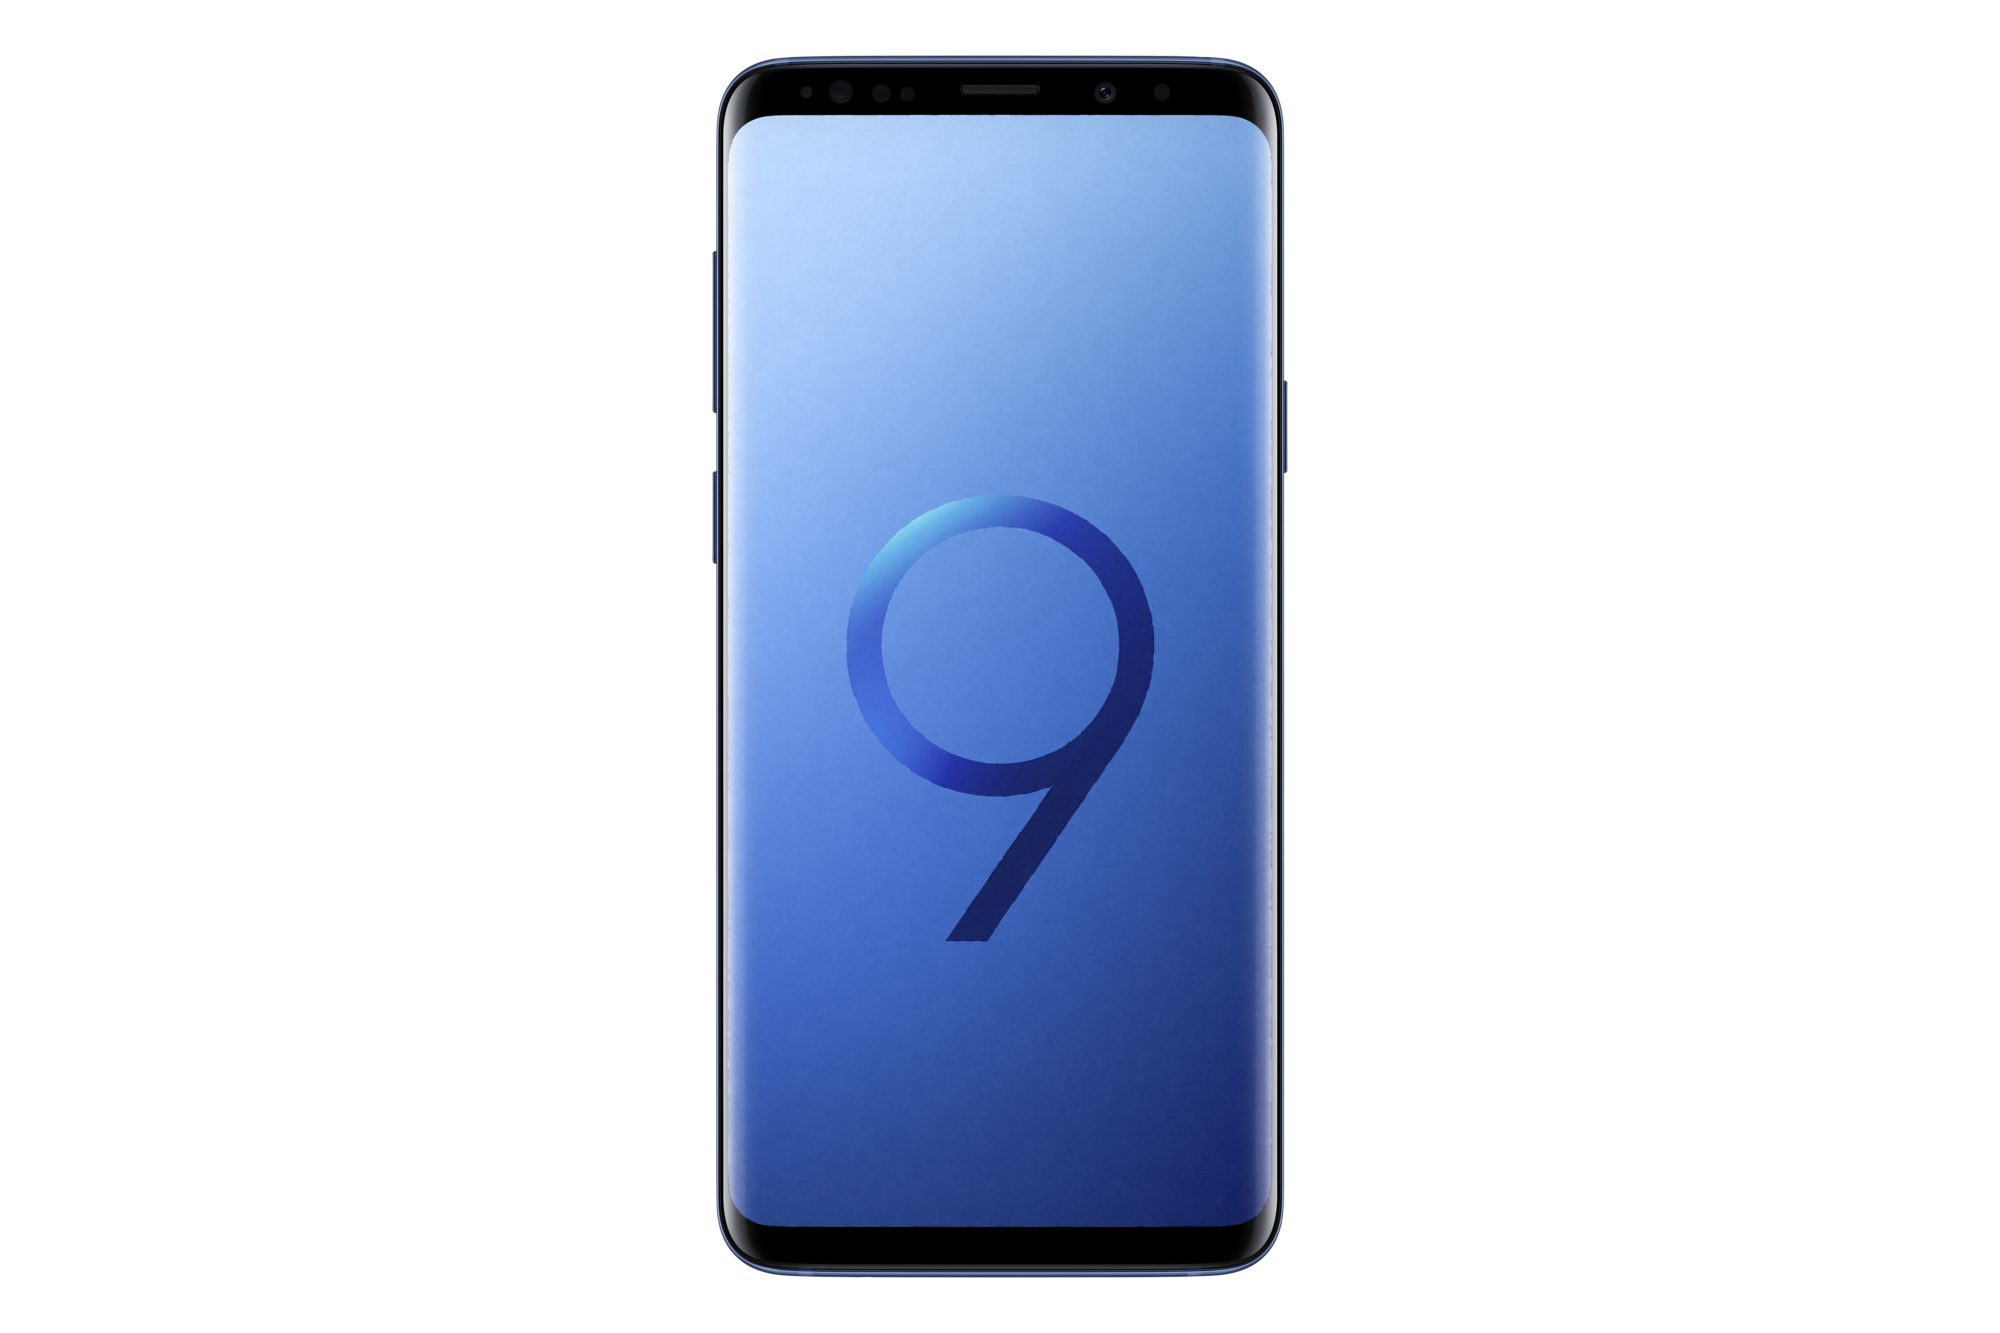 Samsung Galaxy S9 and S9+ coral blue